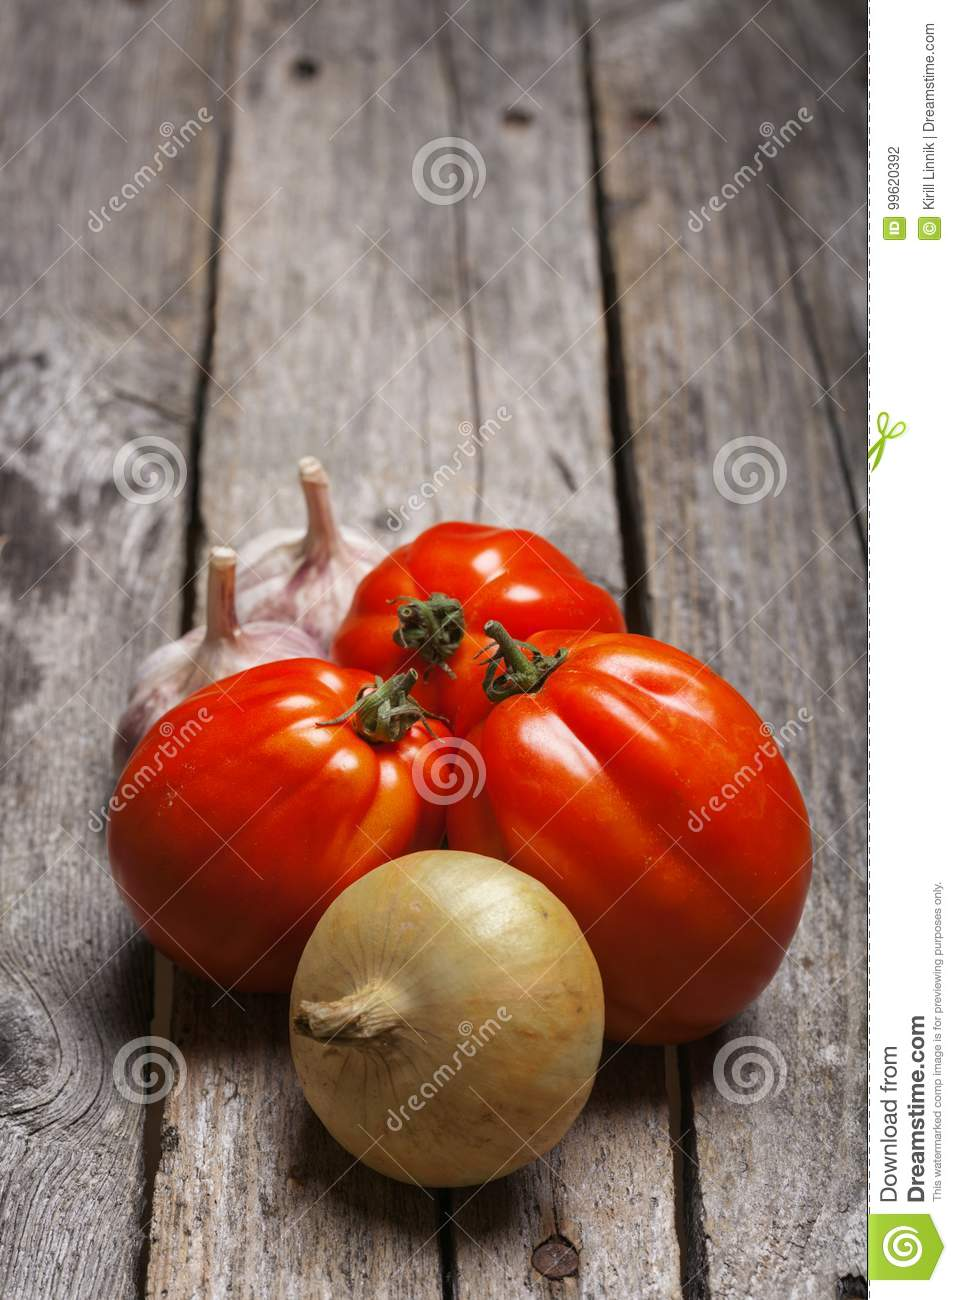 Download Tomatoes, Onion And Garlic On The Table Stock Photo - Image of agriculture, fresh: 99620392